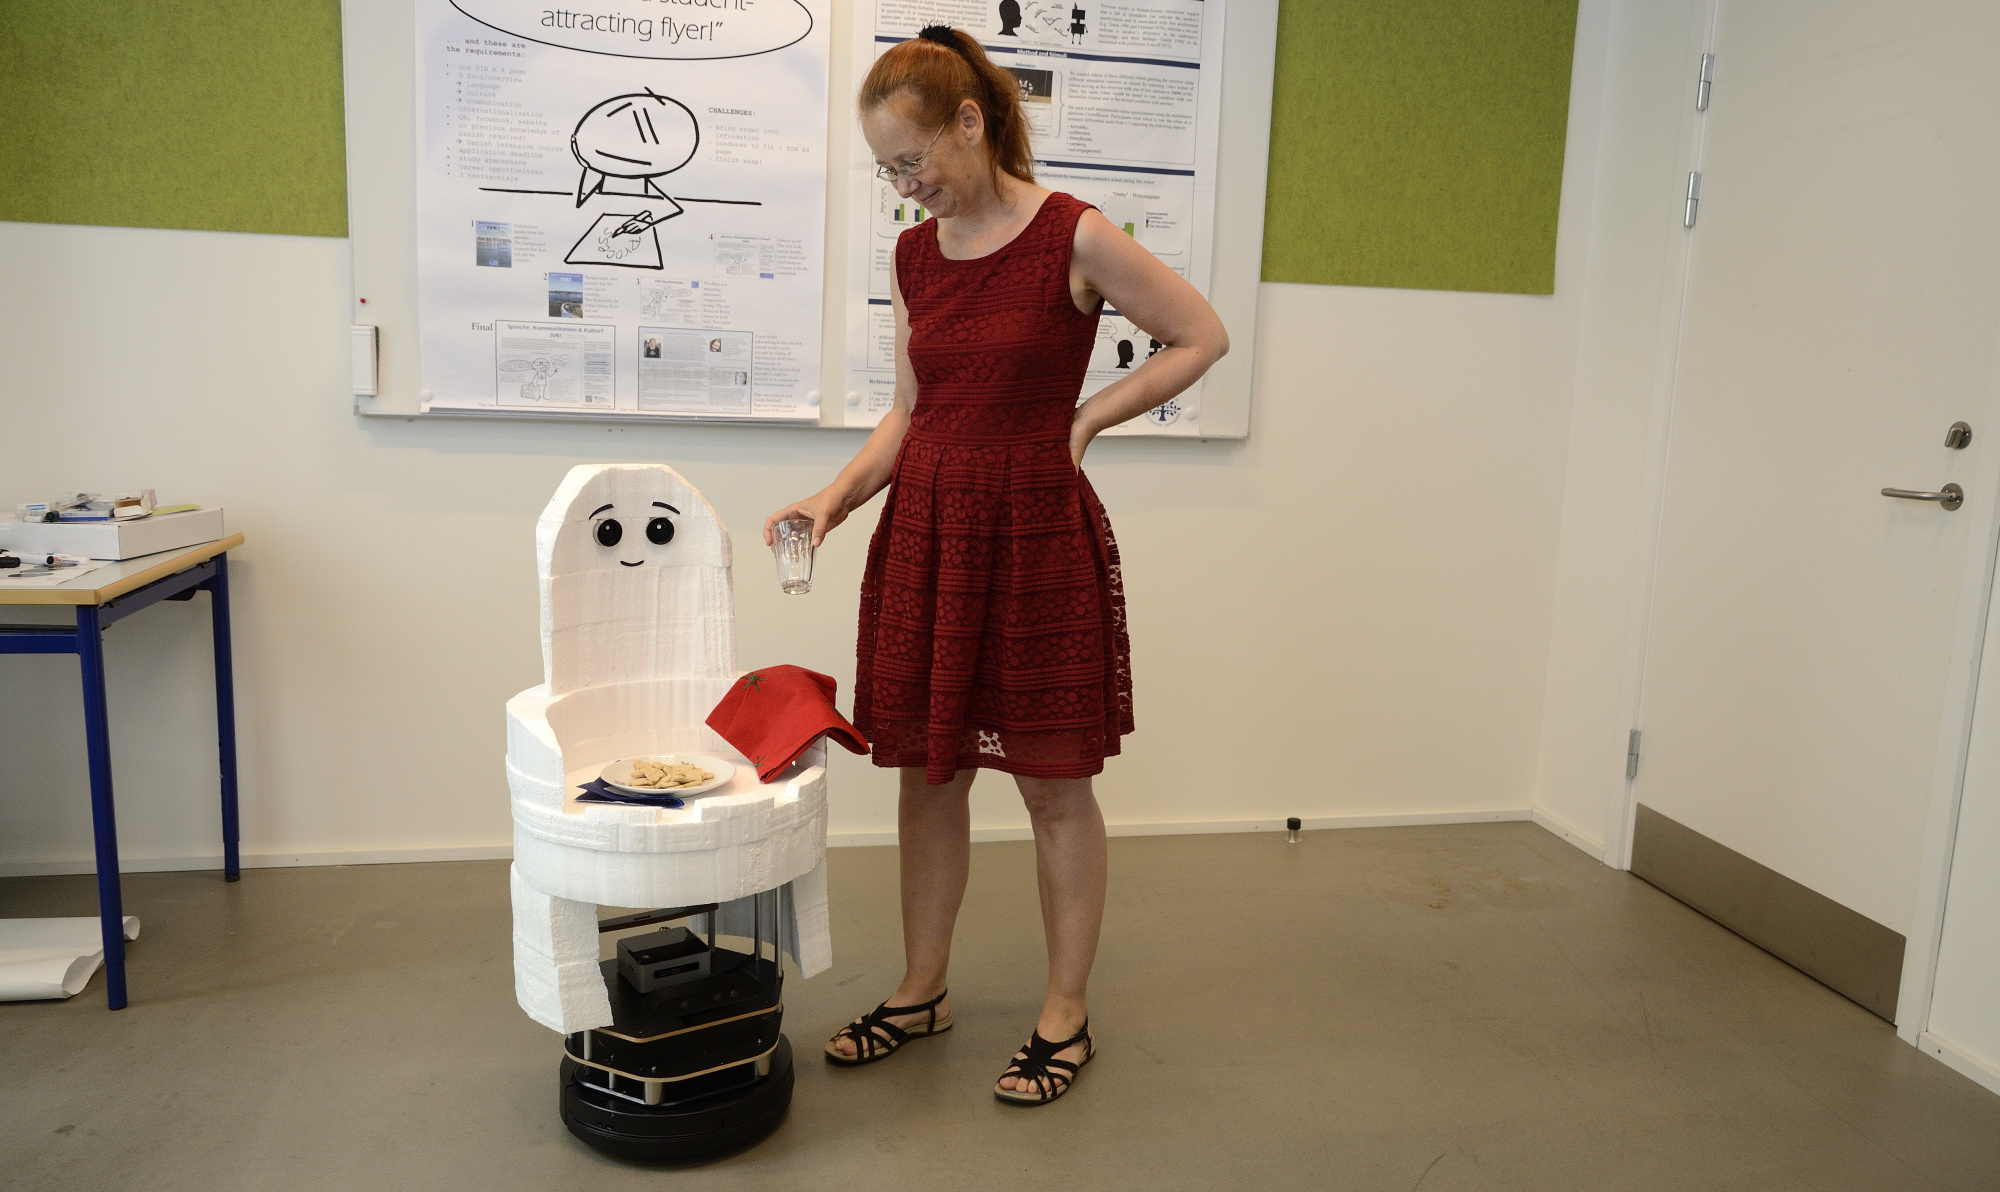 Kerstin Fischer presenting the Casper Turtlebot